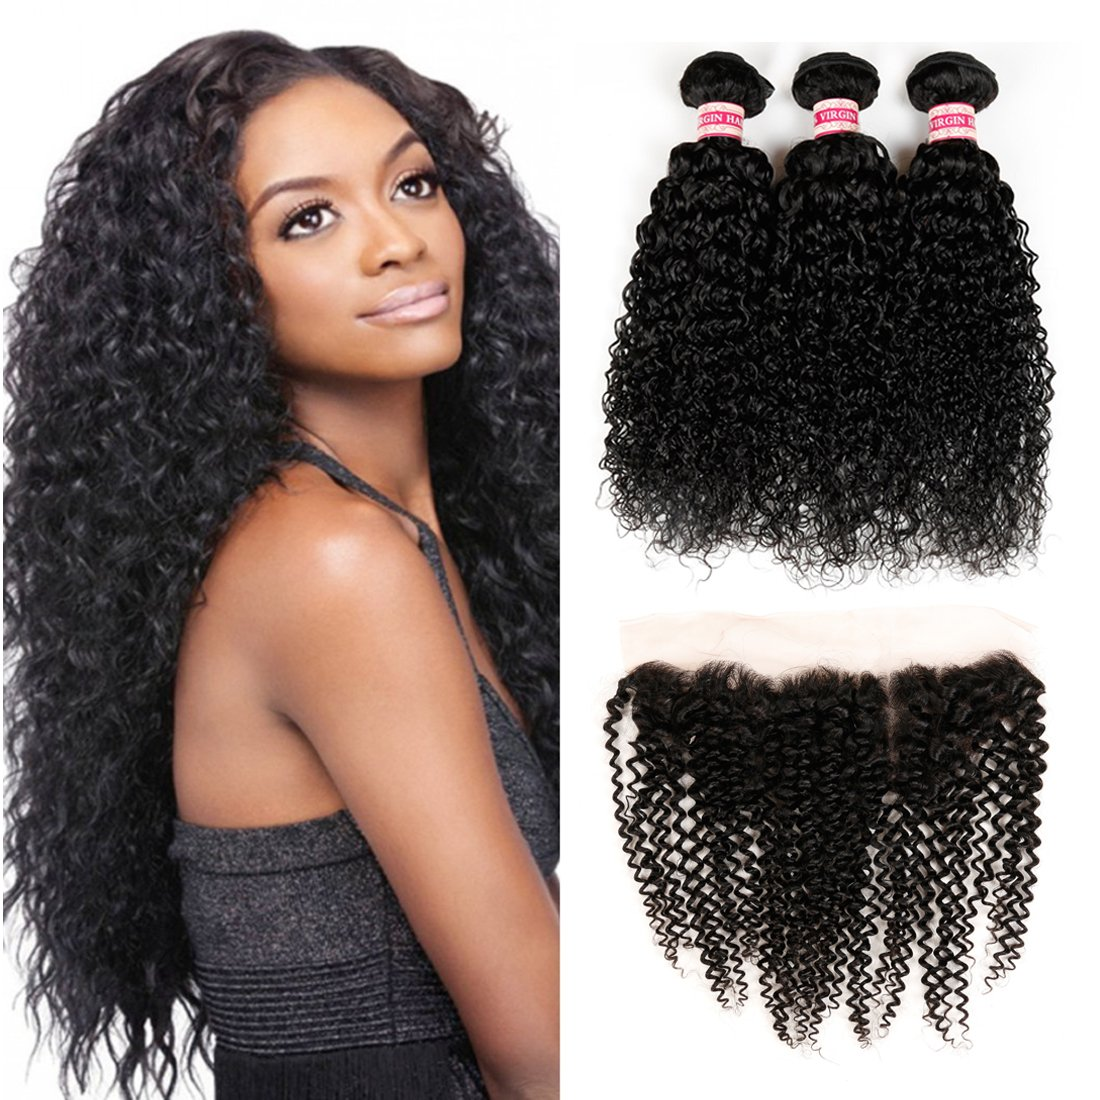 Fabeauty Kinky Curly New arrival 3 Bundles with Part Frontal Closu Max 66% OFF Lace Free